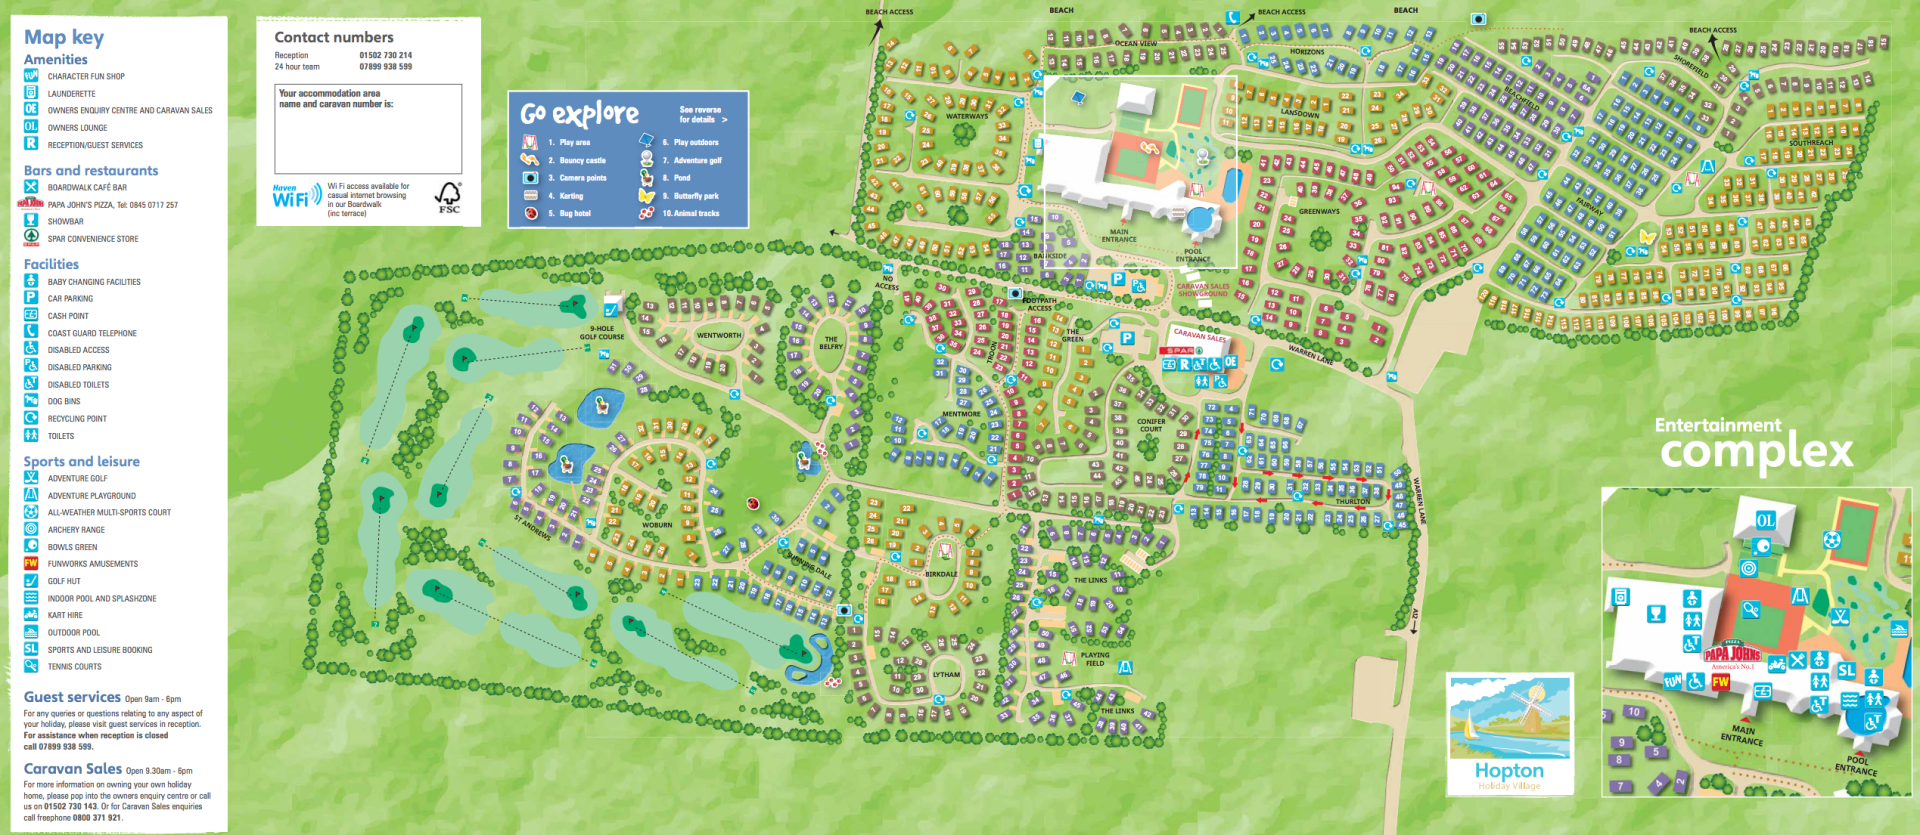 Haven Hopton Holiday Village - Map